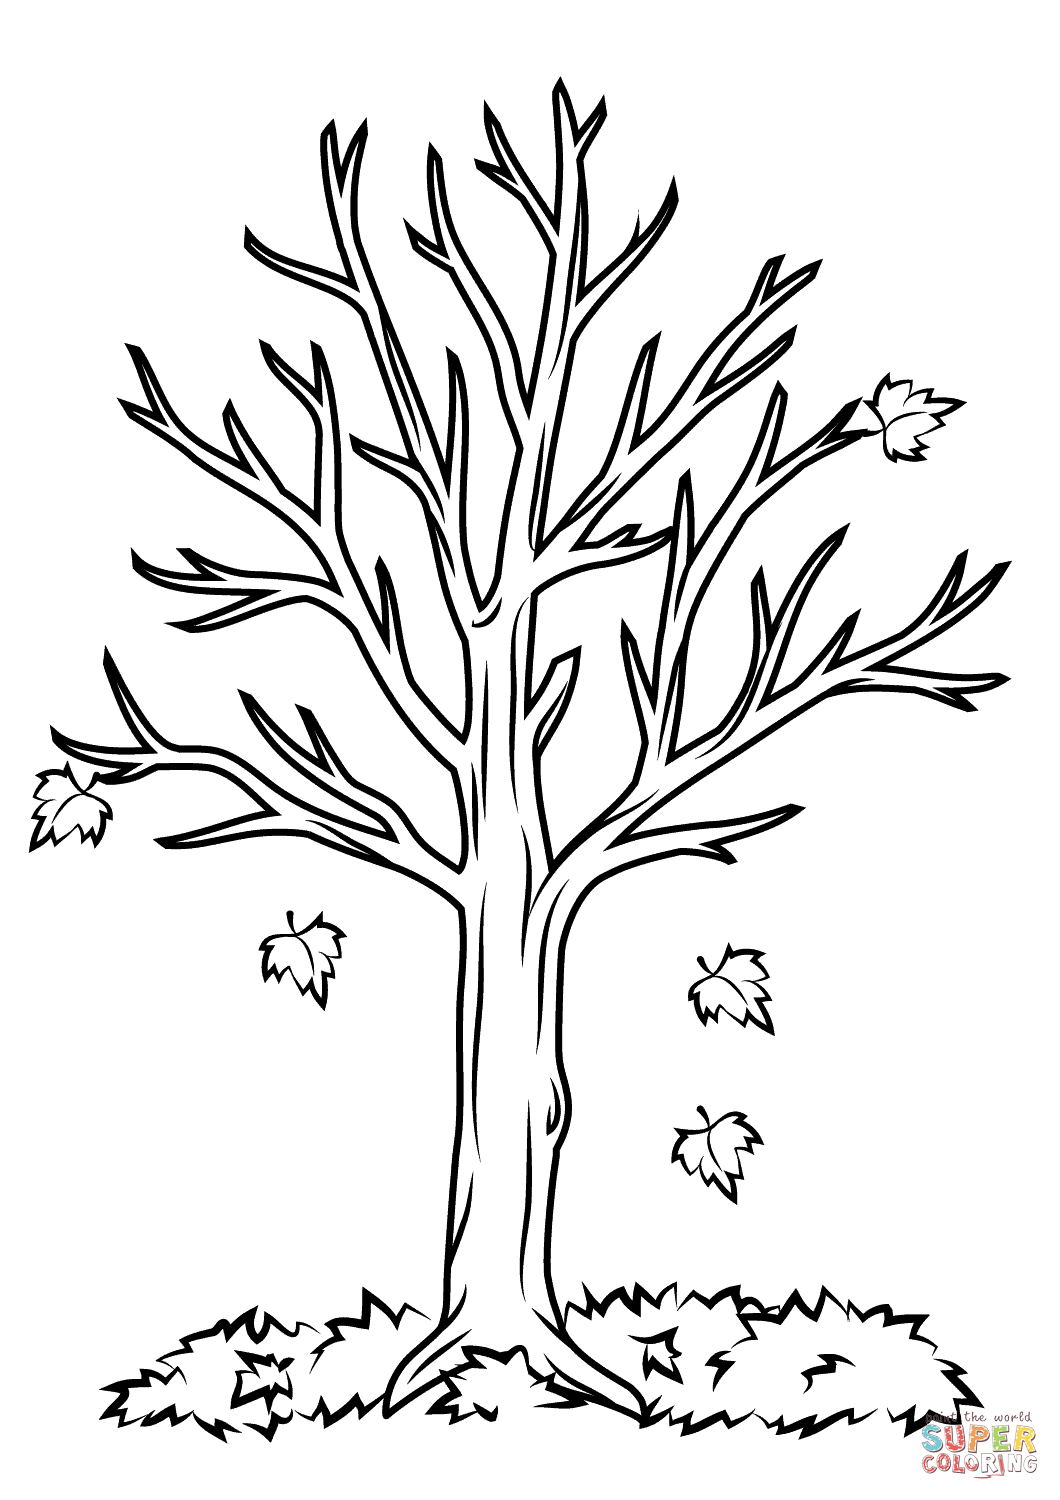 1060x1500 Christmas Tree And Elves Coloring Pages For Kids Printable